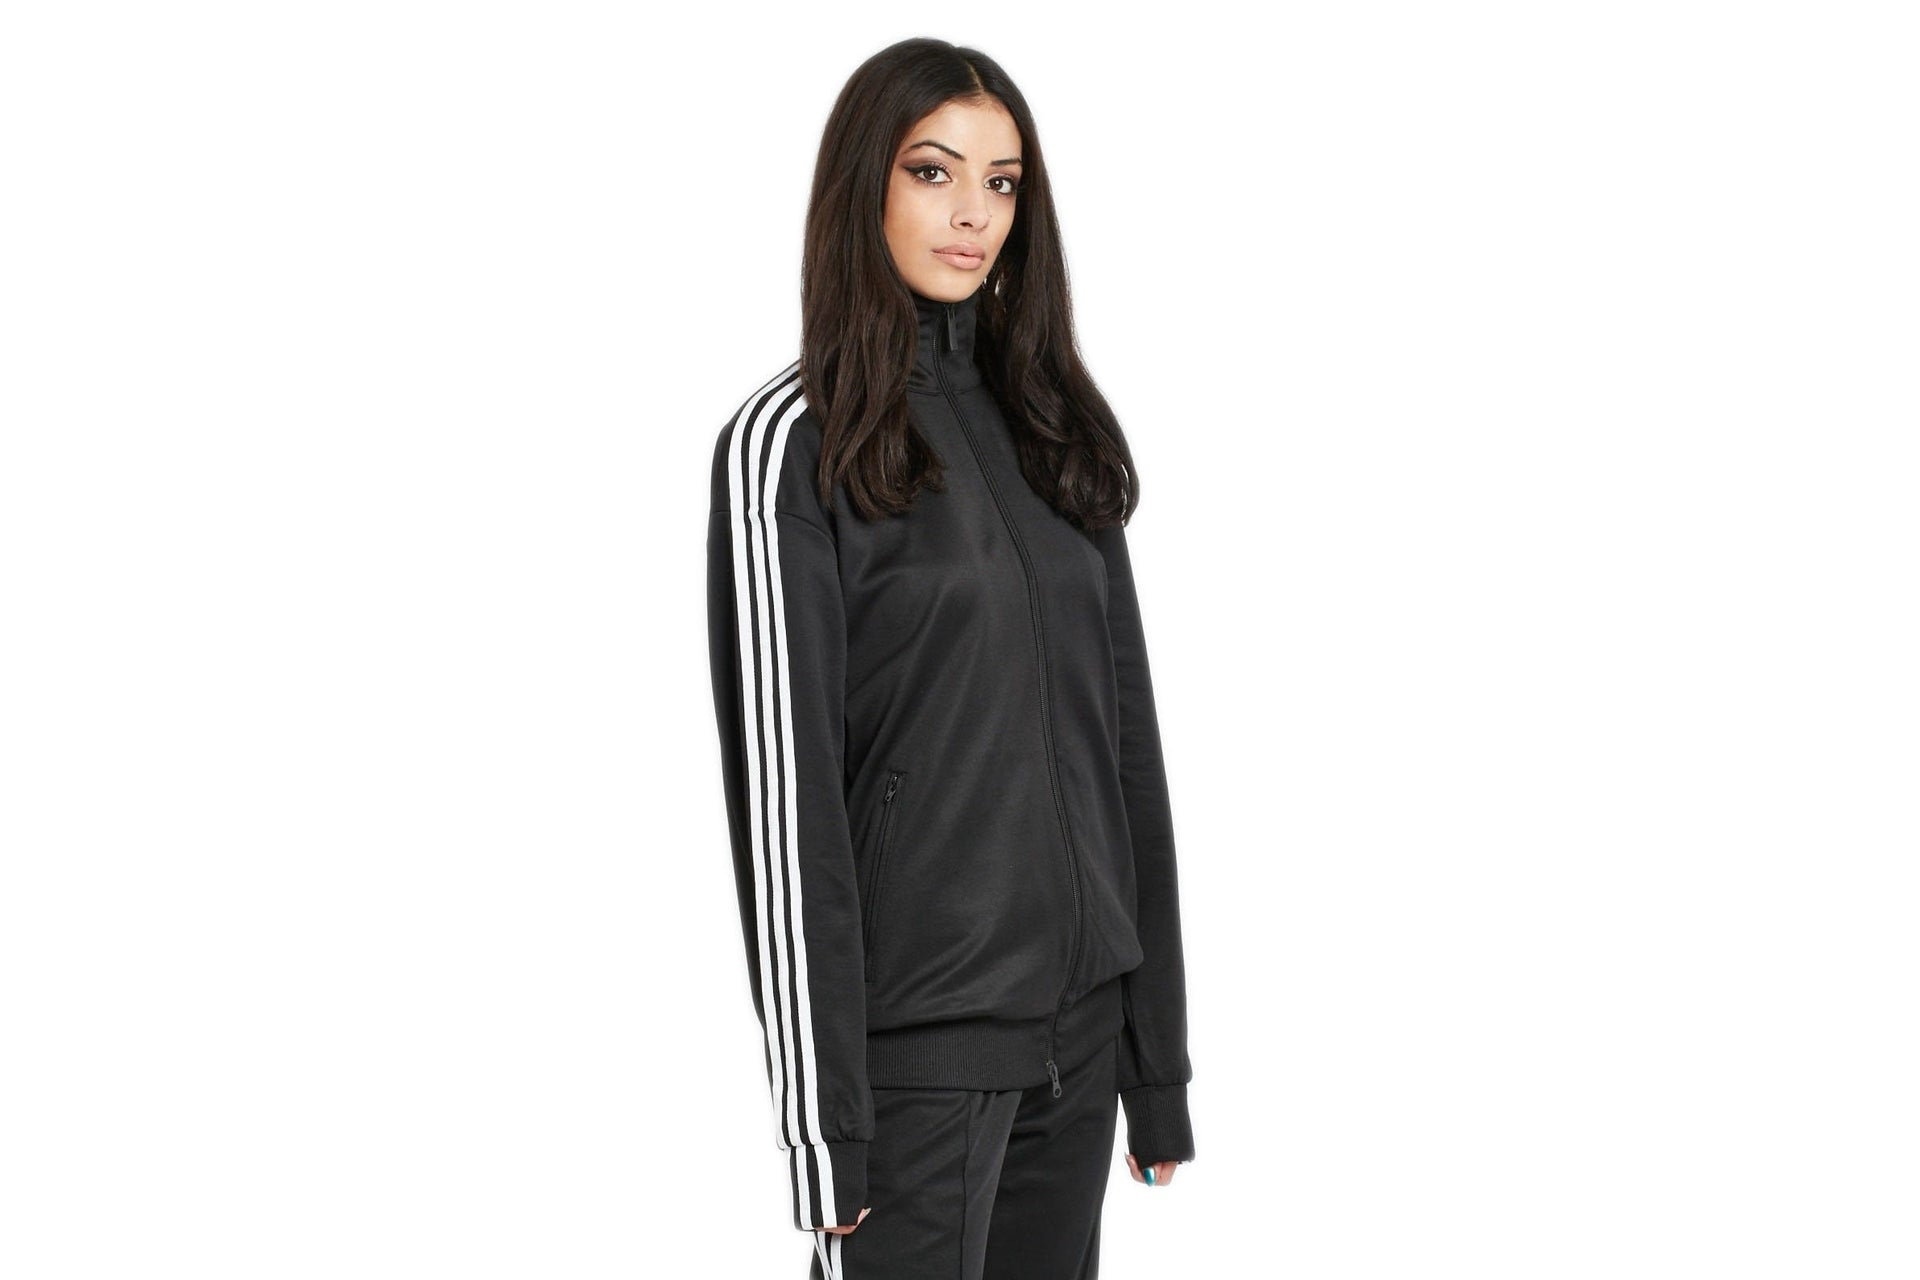 NAKED TT - CY4791 WOMENS SOFTGOODS ADIDAS